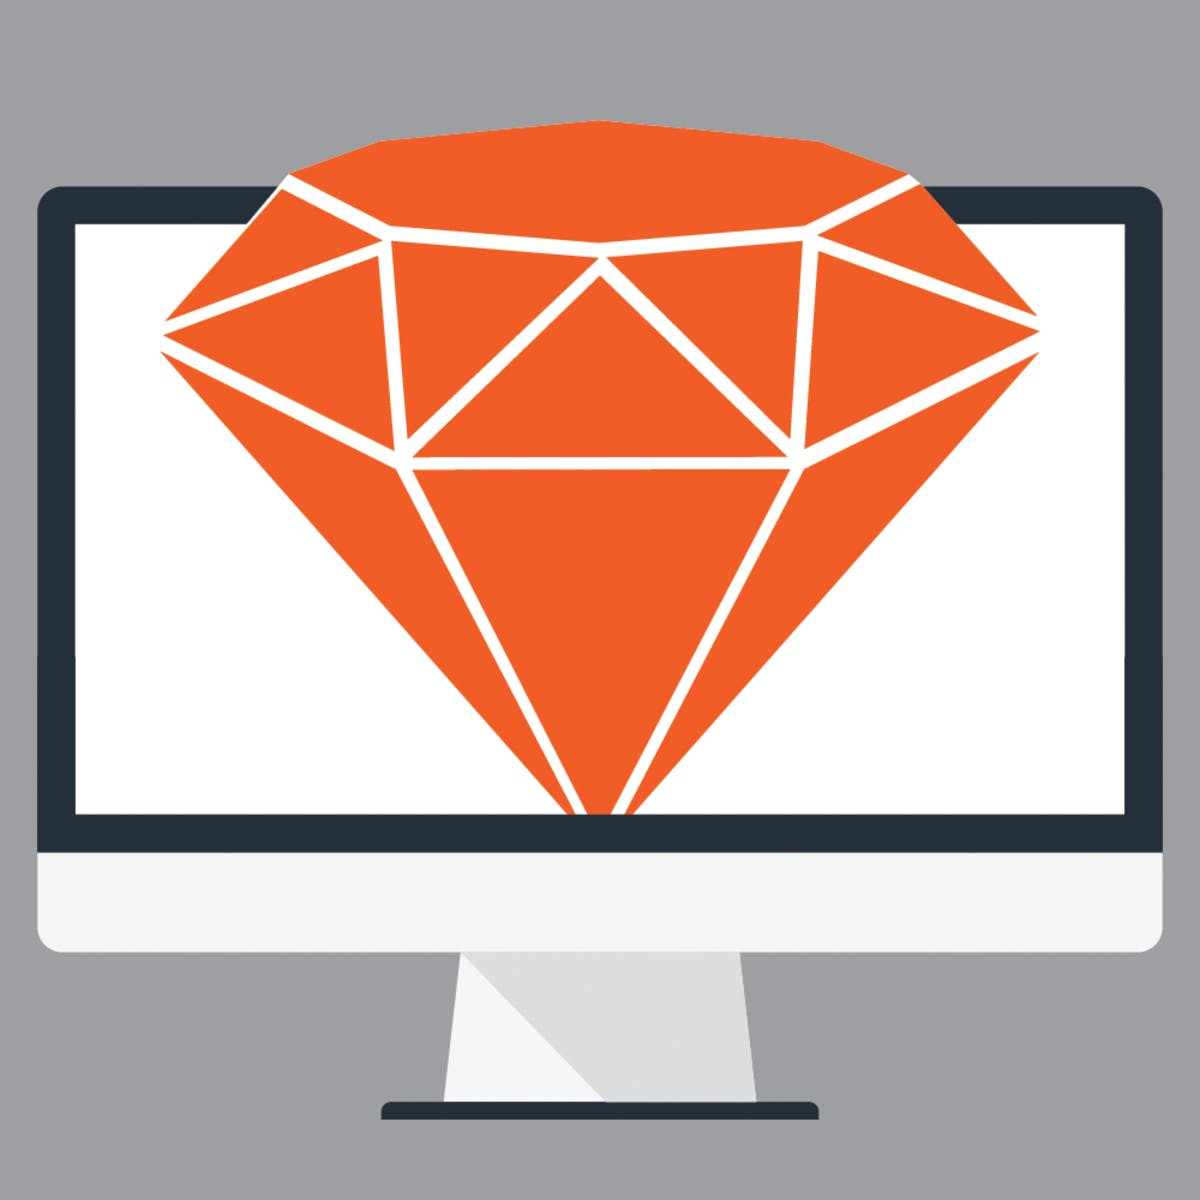 Ruby on Rails: An Introduction